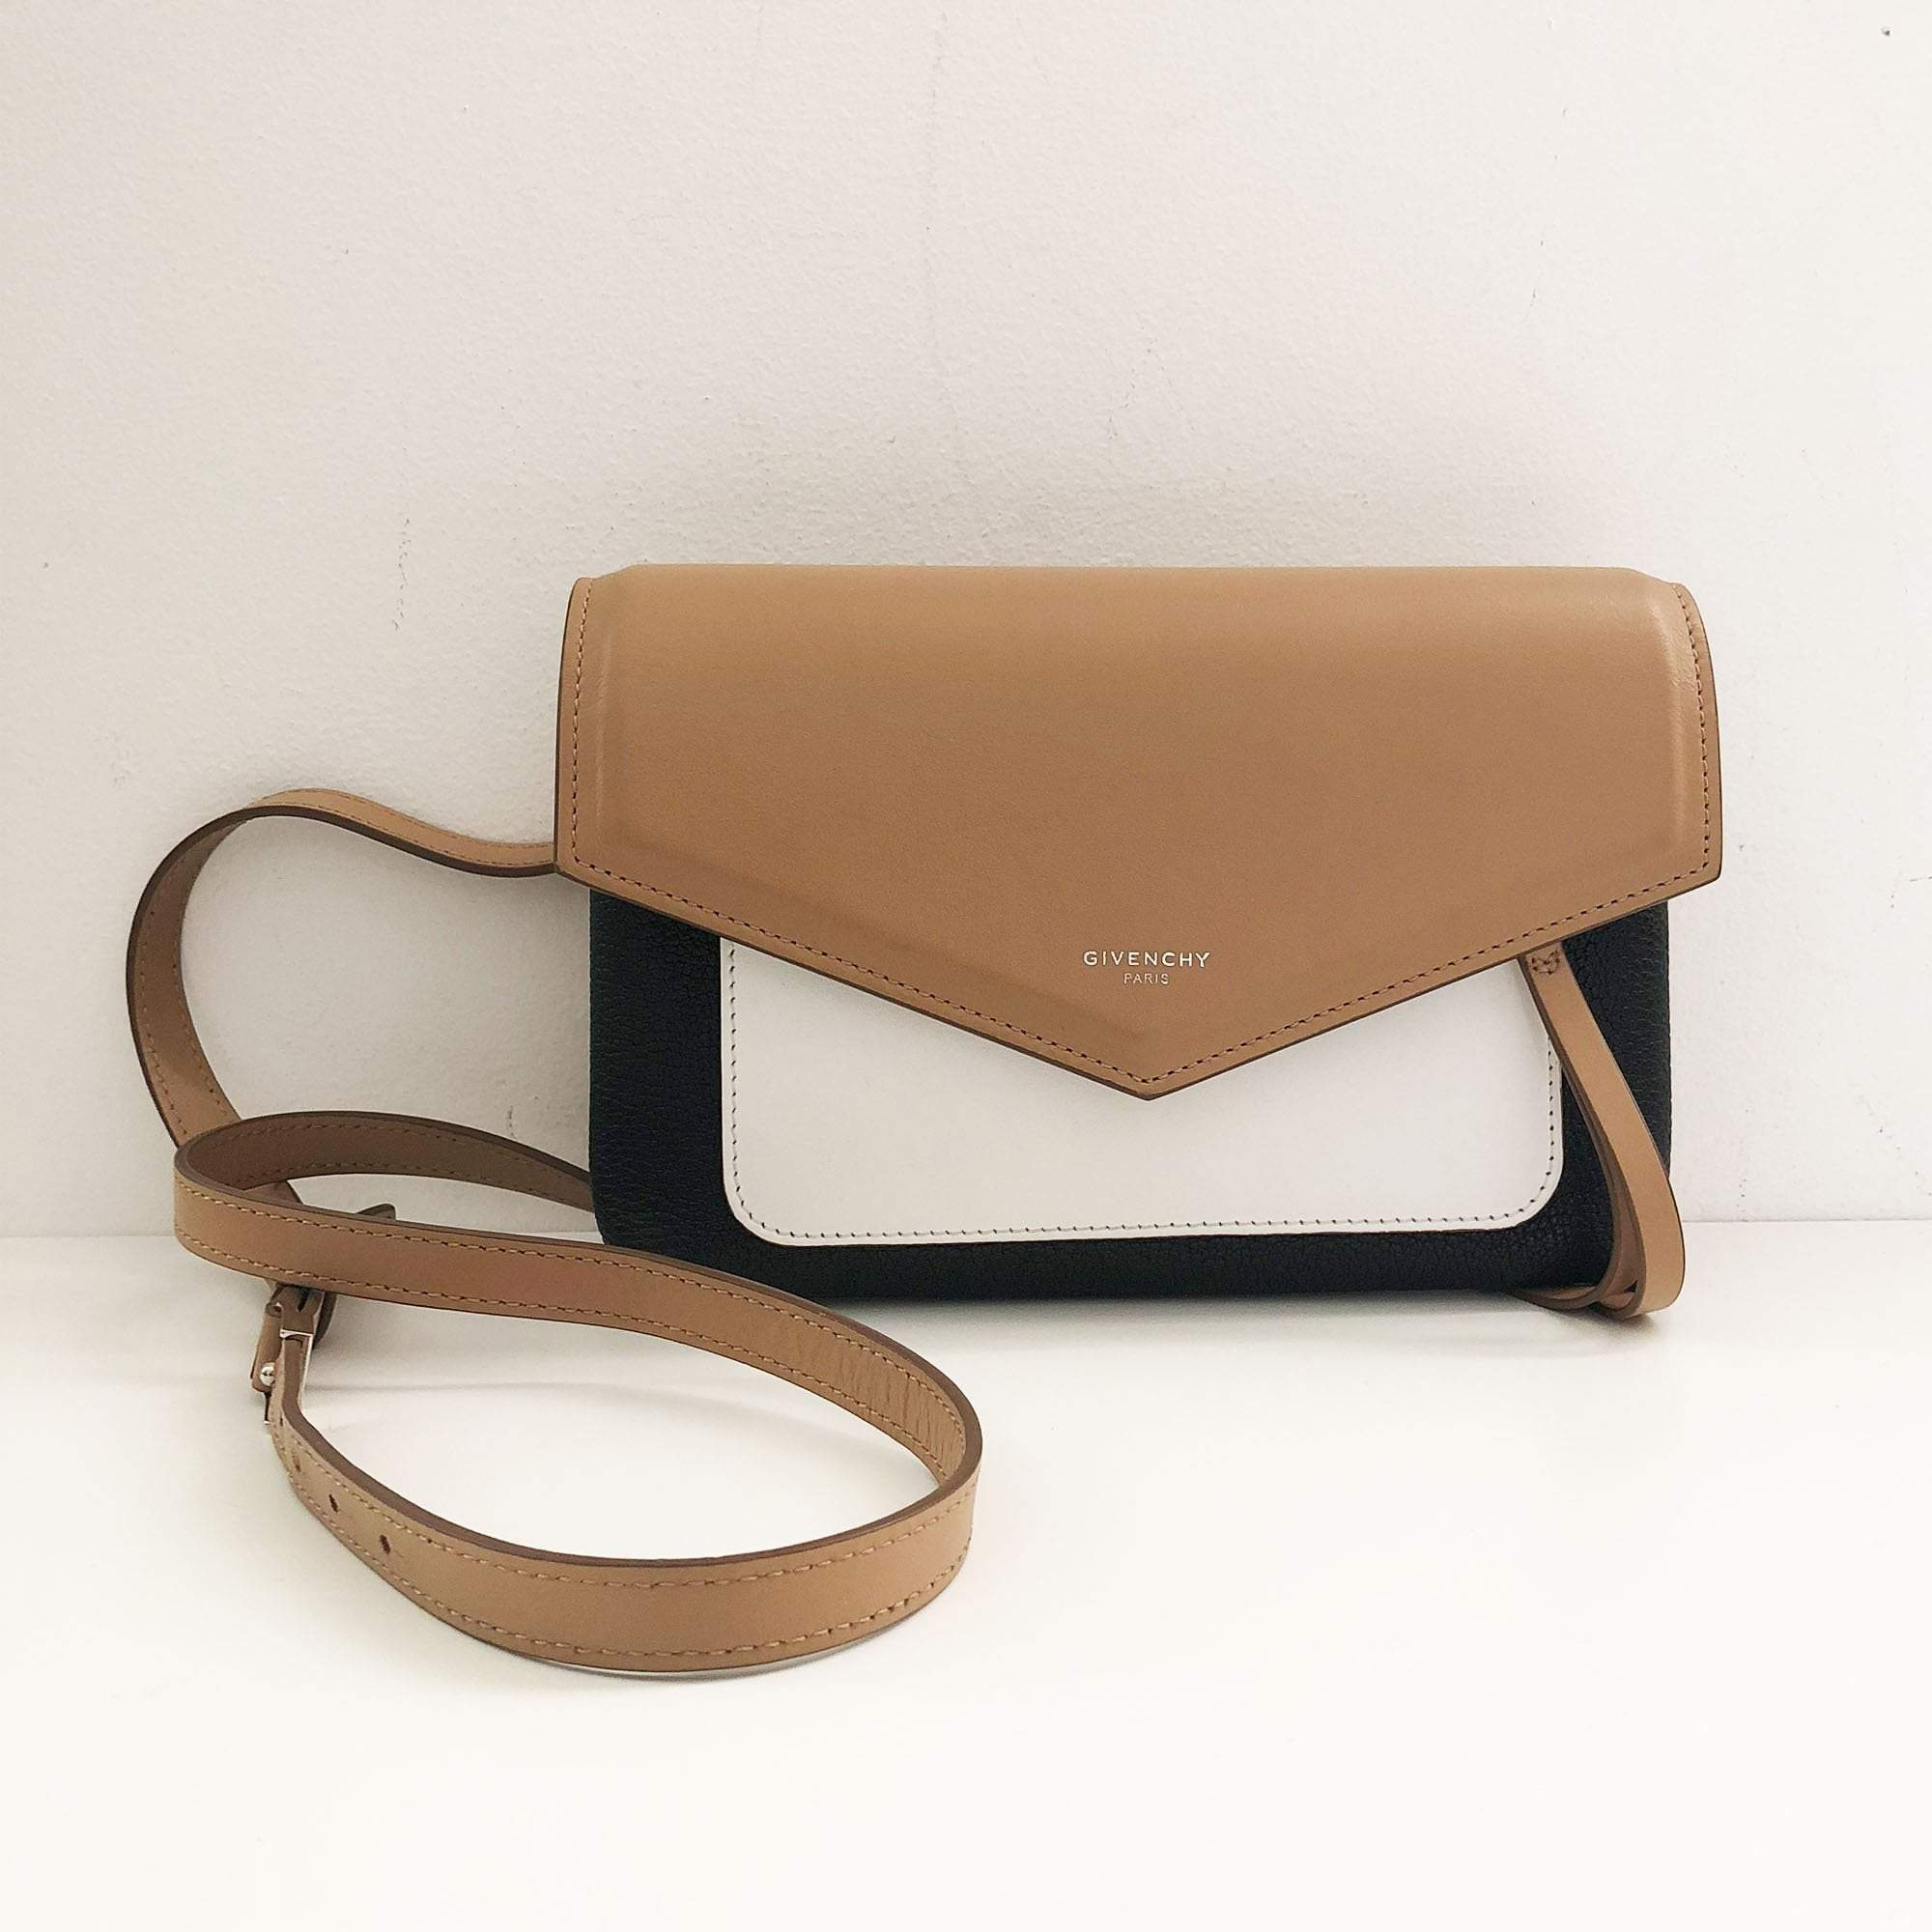 Givenchy Duetto Tricol leather cross-body bag